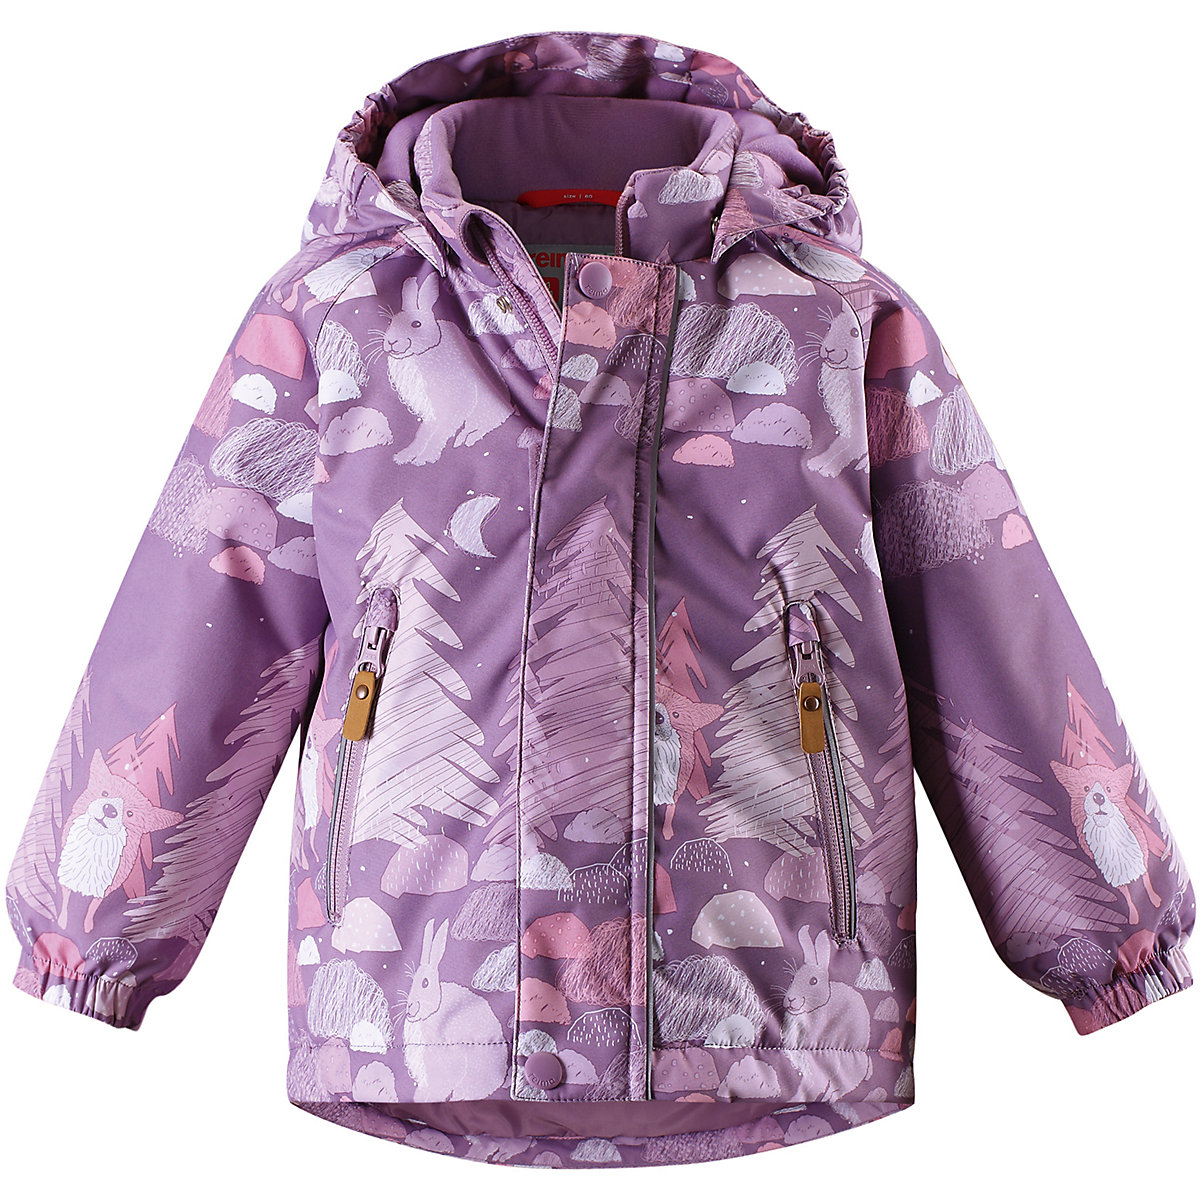 REIMA Jackets 8665456 for girls polyester winter  fur clothes girl 2016 new style popular 18 inch american girl doll pajamas clothes dress for christmas gift abd 072